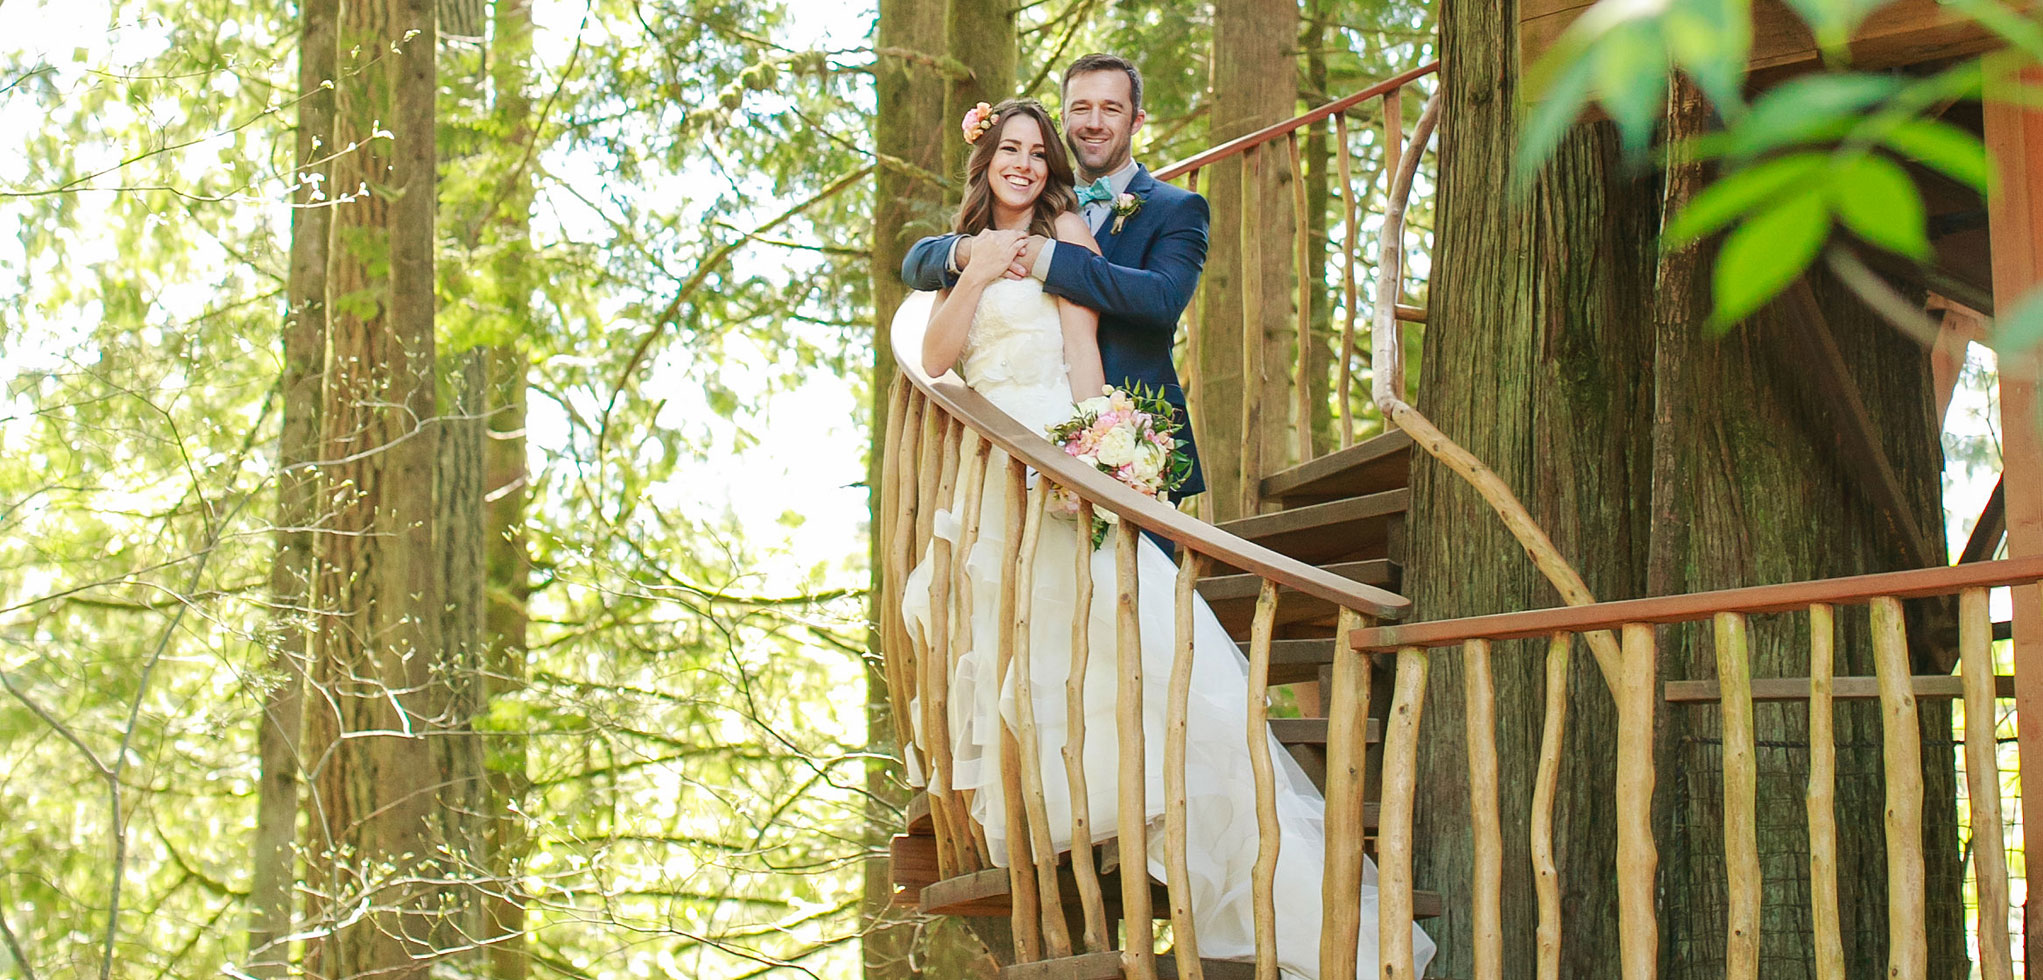 Plan your Wedding at Treehouse Point in Fall City Washington